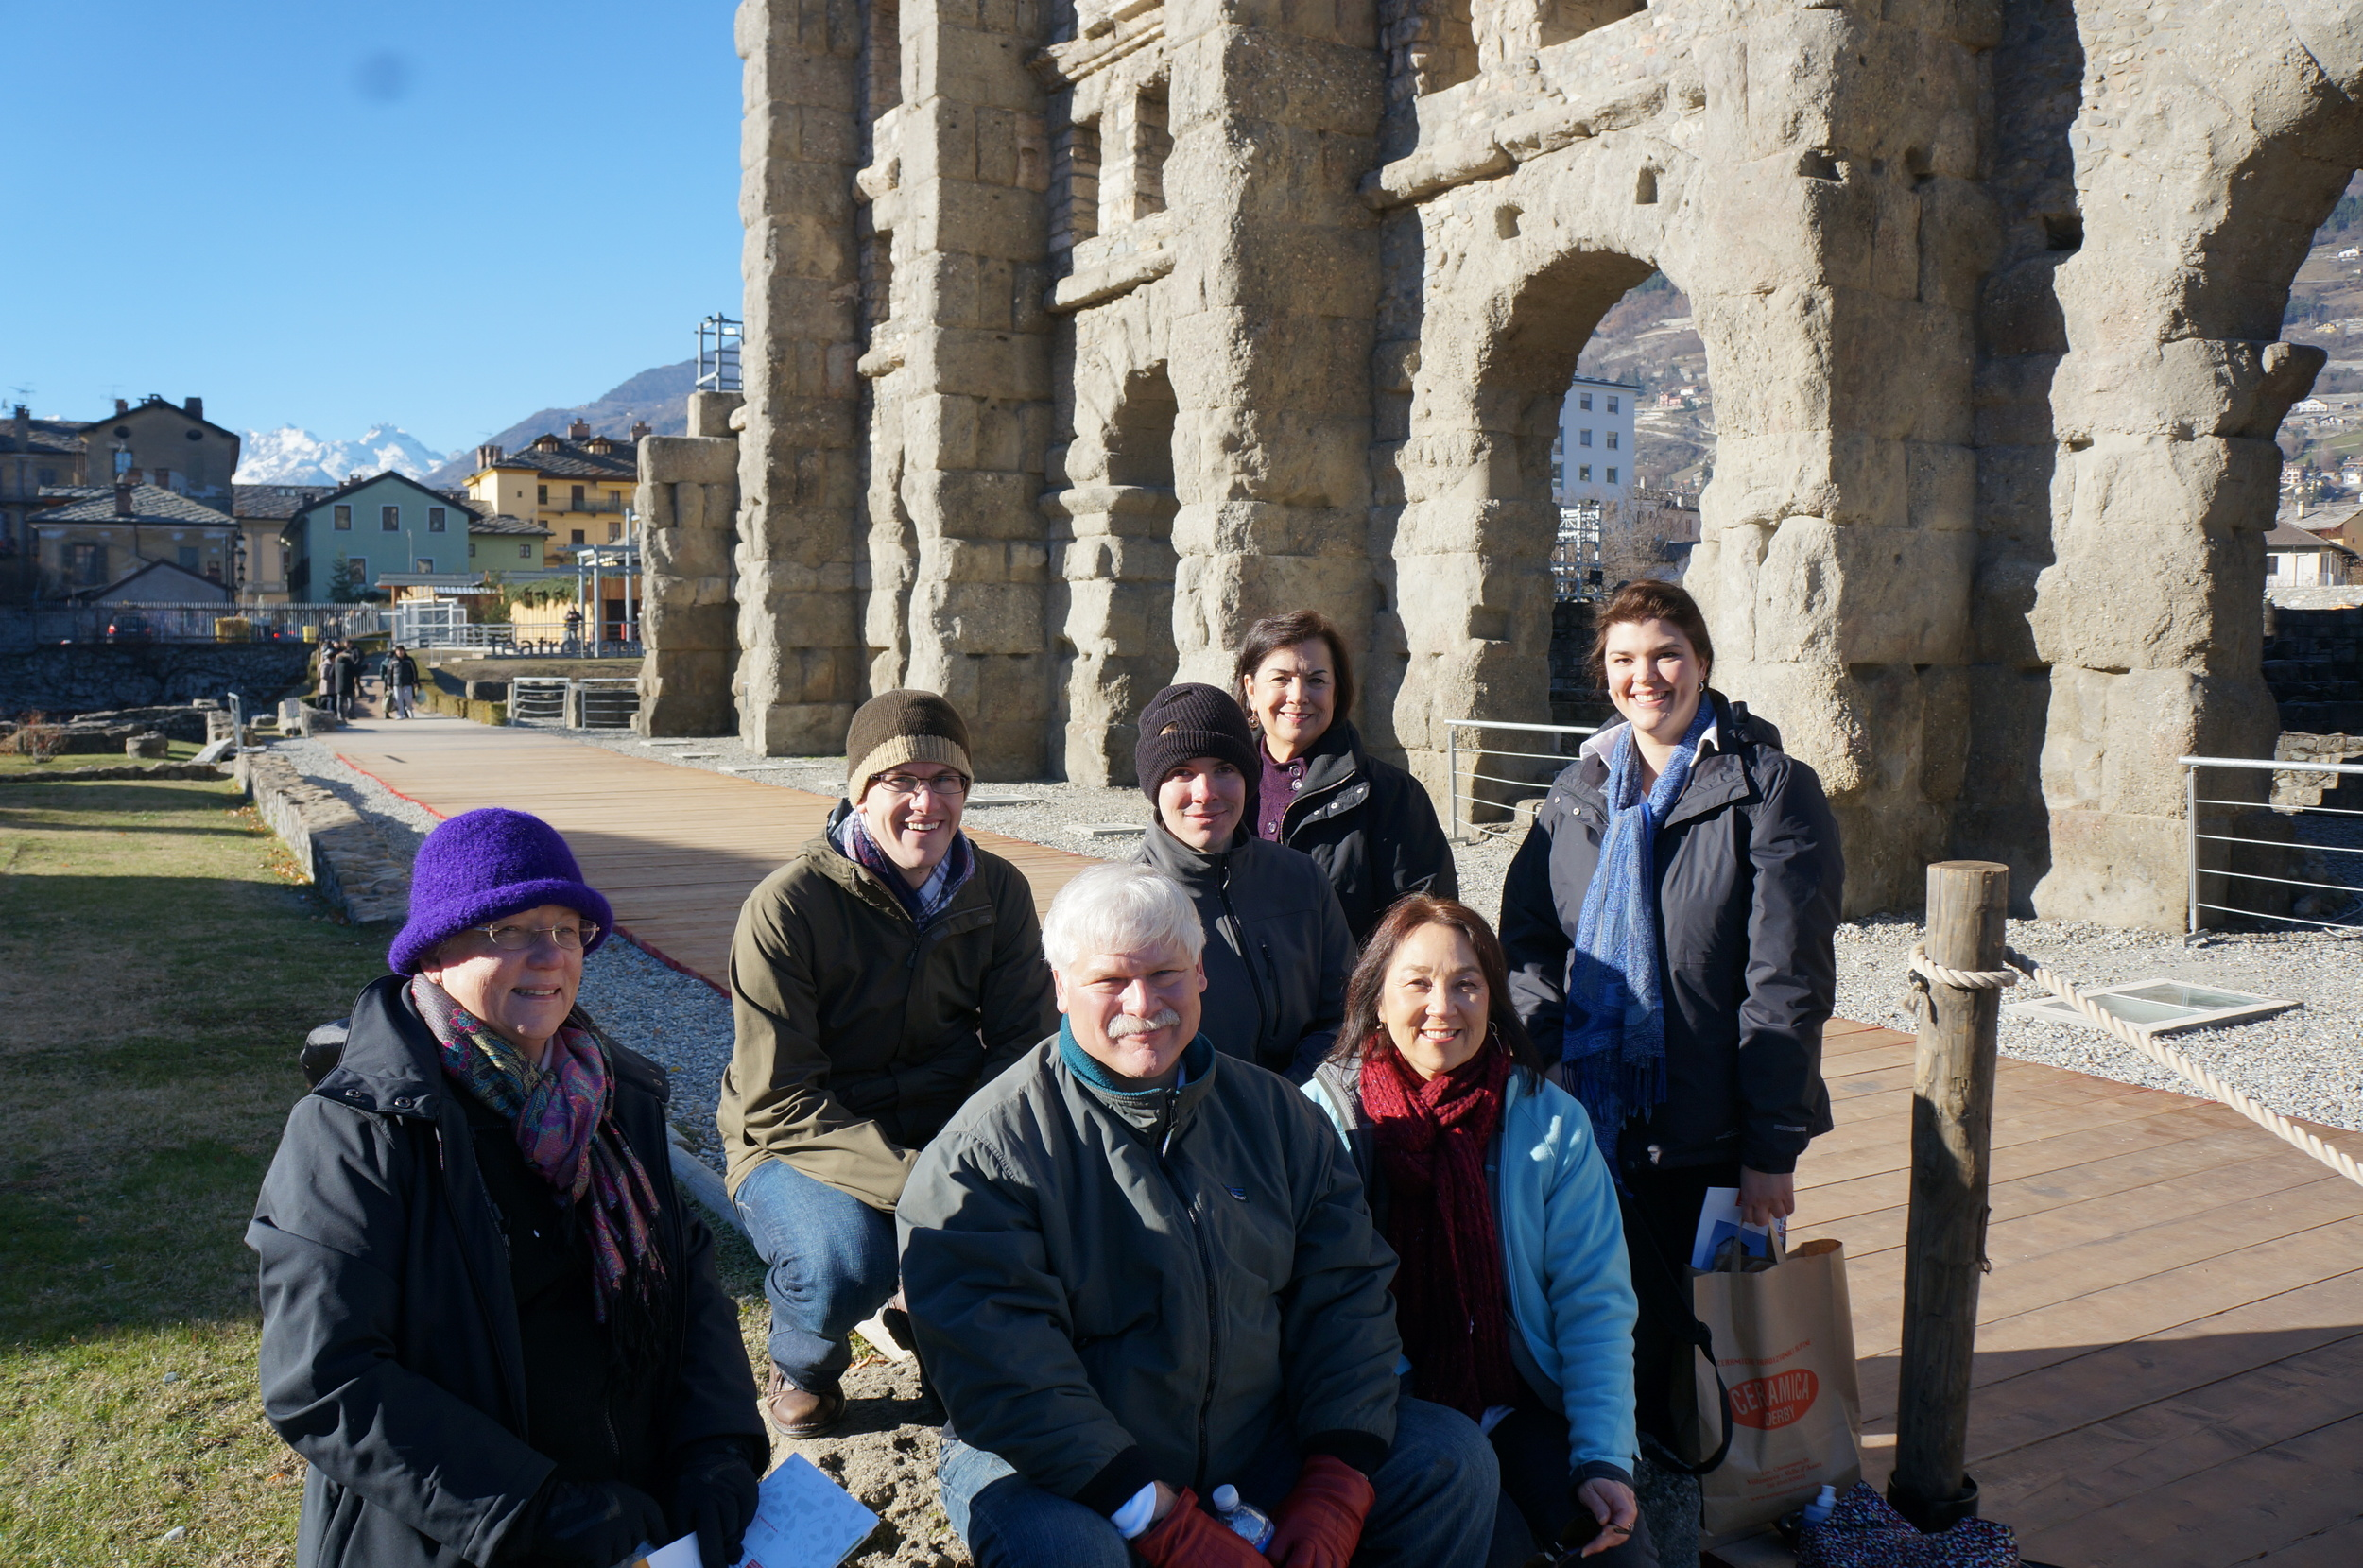 Team in Aosta, outside the Roman Theater